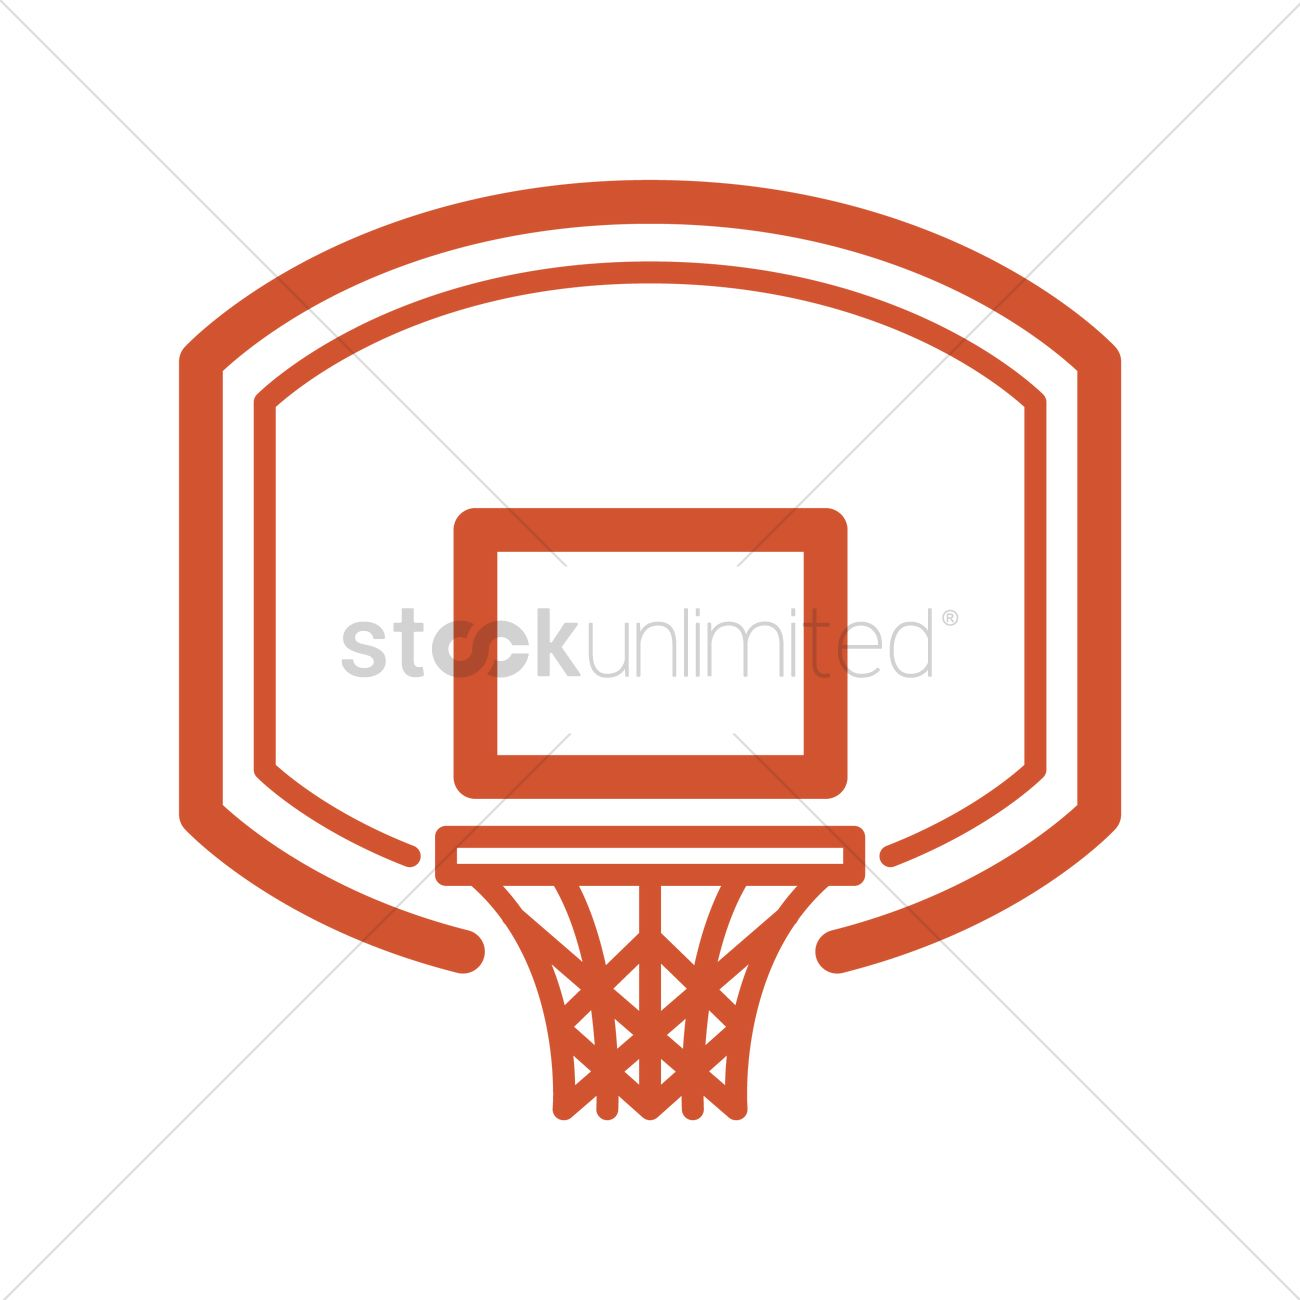 Basketball backboard and rim Vector Image.